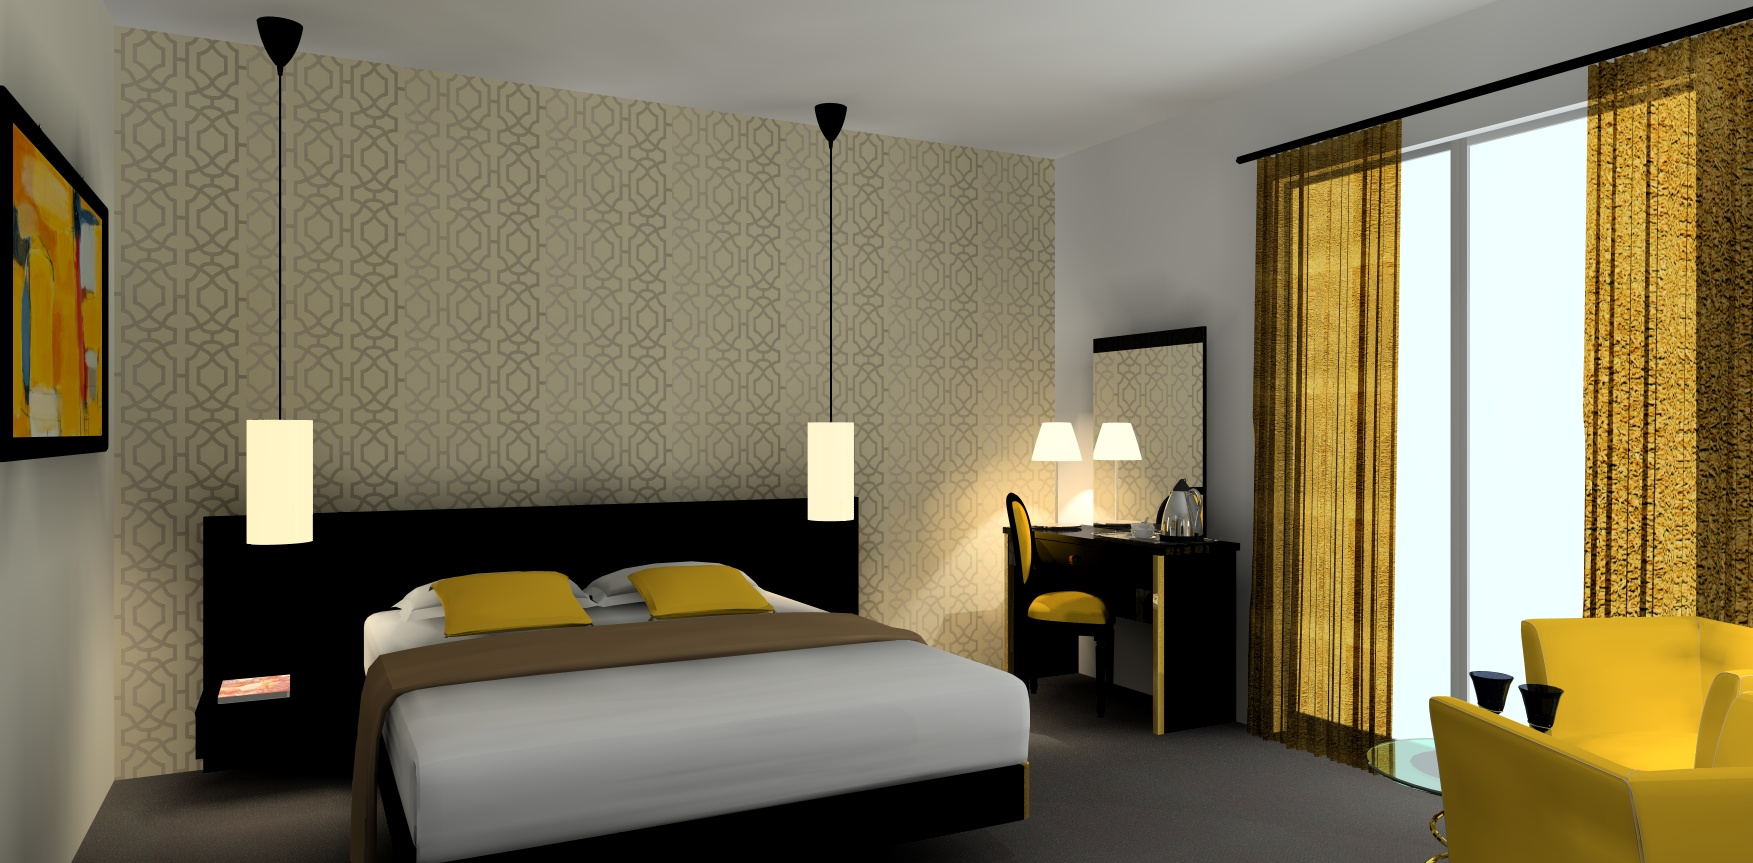 Decorer sa chambre virtuellement the deco house 10 mani for Decorer une chambre